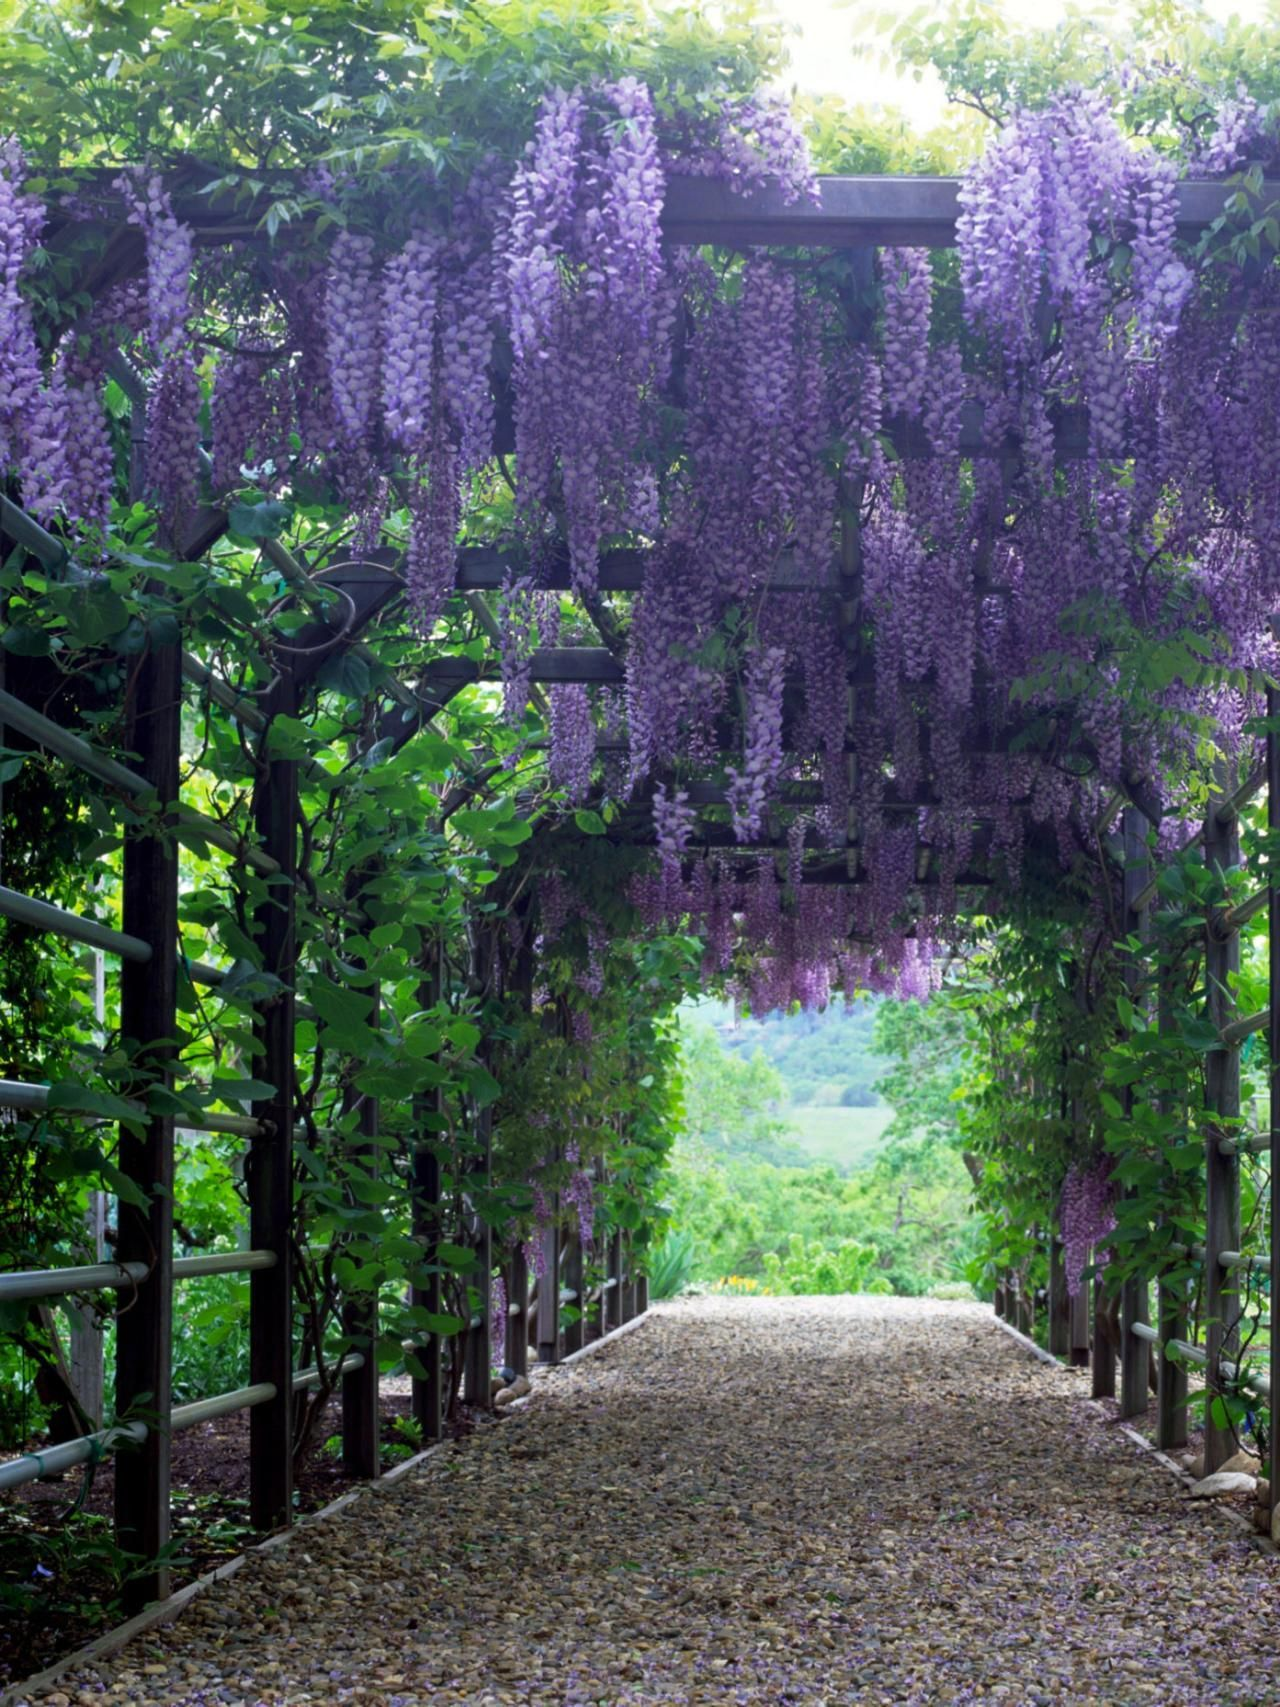 The Best Vines to Grow on Arches and Pergolas#arches #grow #pergolas #vines